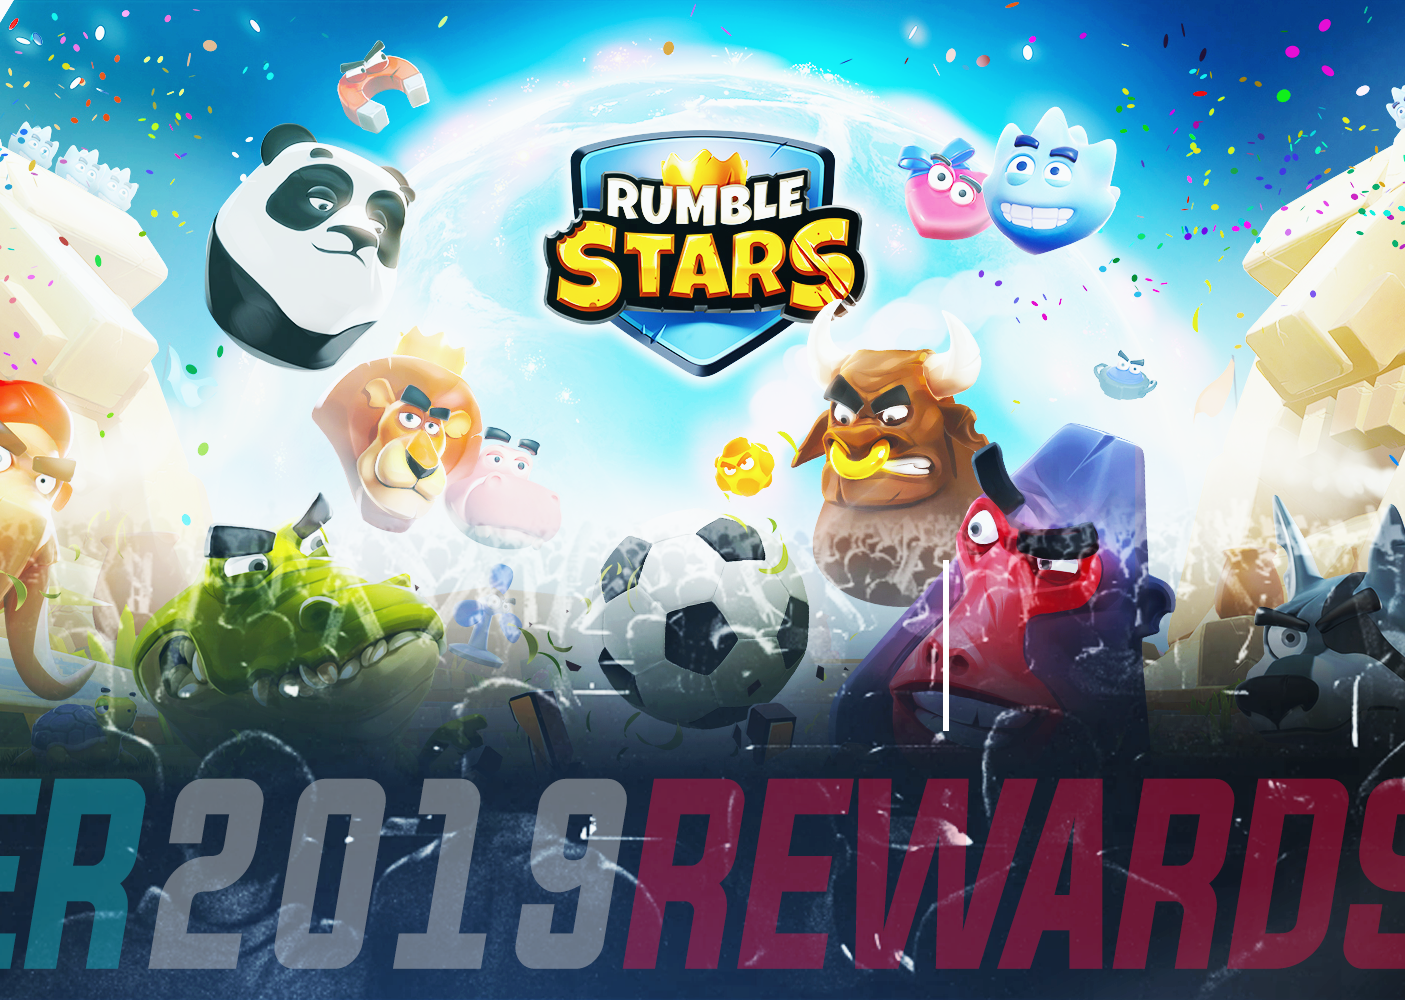 Rumble Stars Rewards